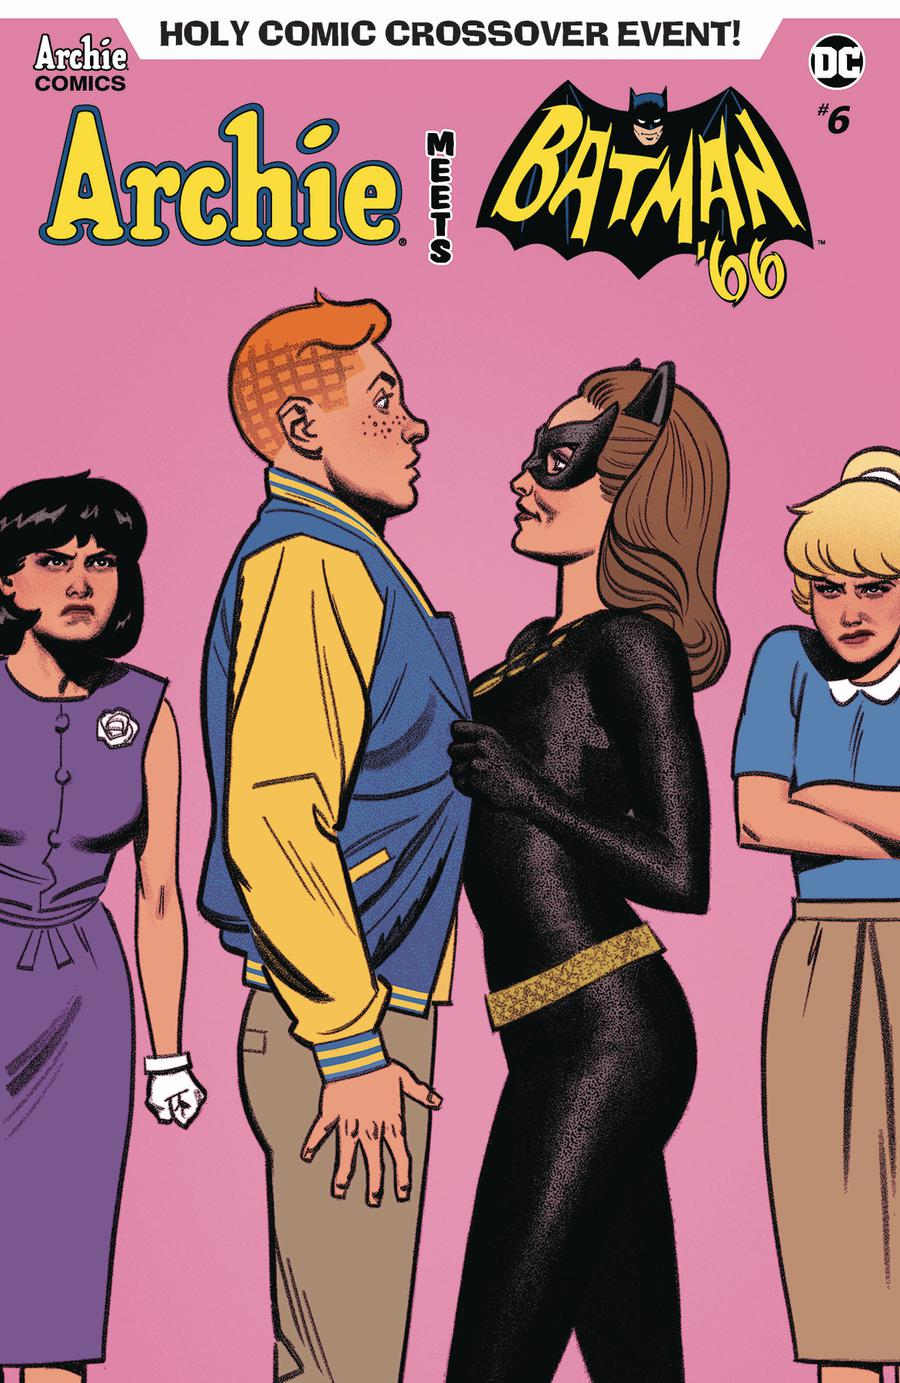 Archie Meets Batman 66 #6 Cover F Variant Greg Smallwood Cover